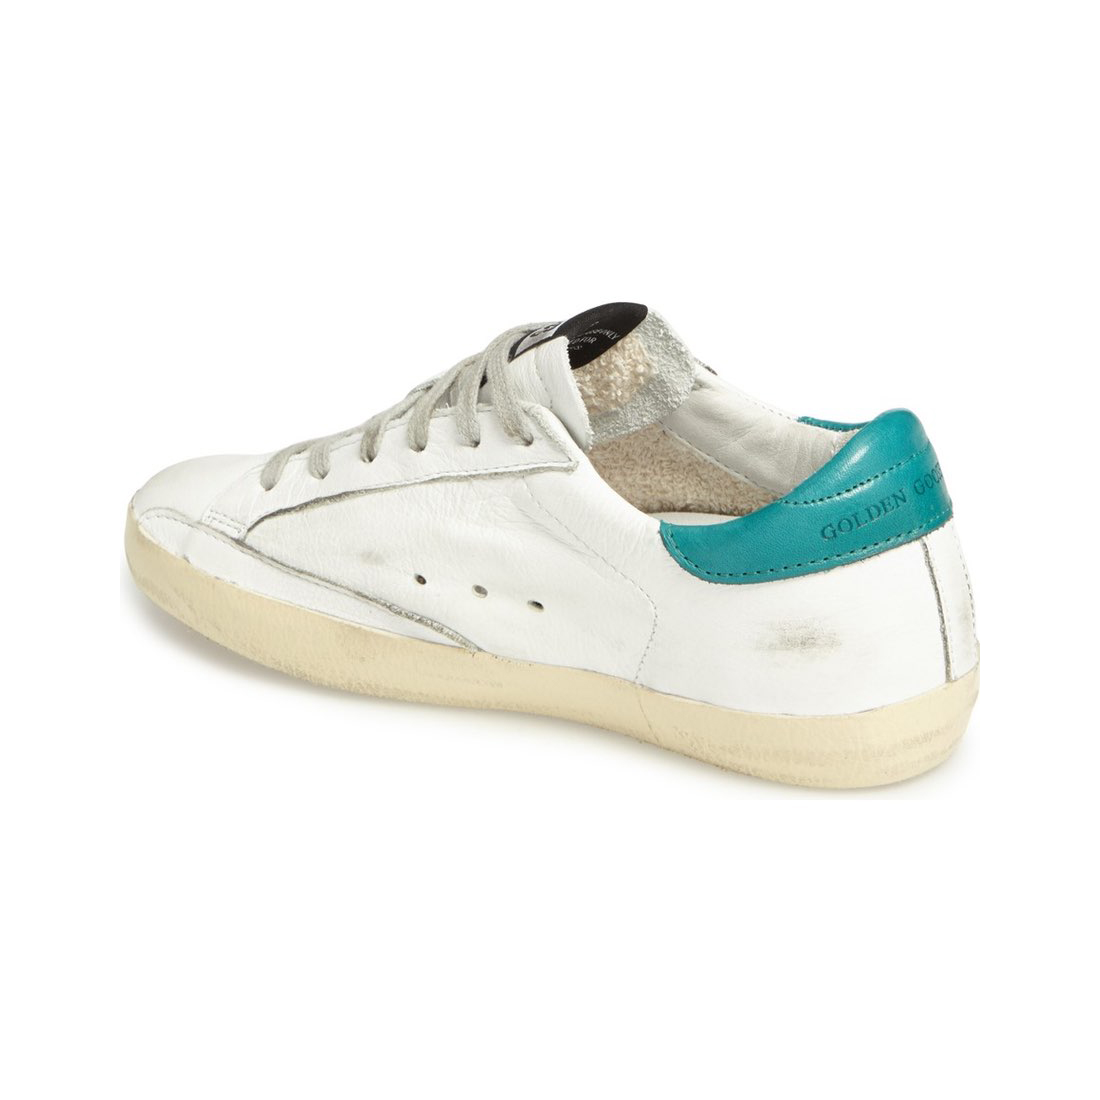 GOLDEN GOOSE 'Superstar' Low Top Sneaker (Women)